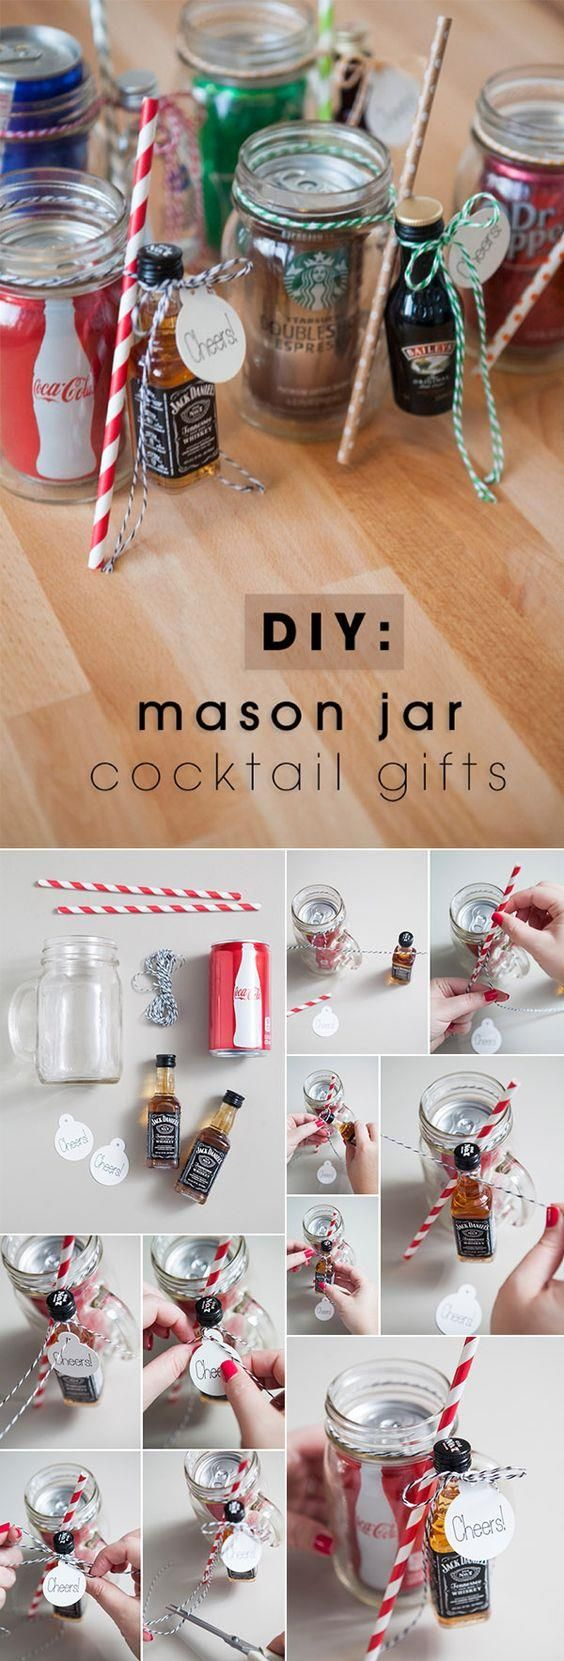 1000 images about great diy gift ideas on pinterest diy Do it yourself christmas gifts